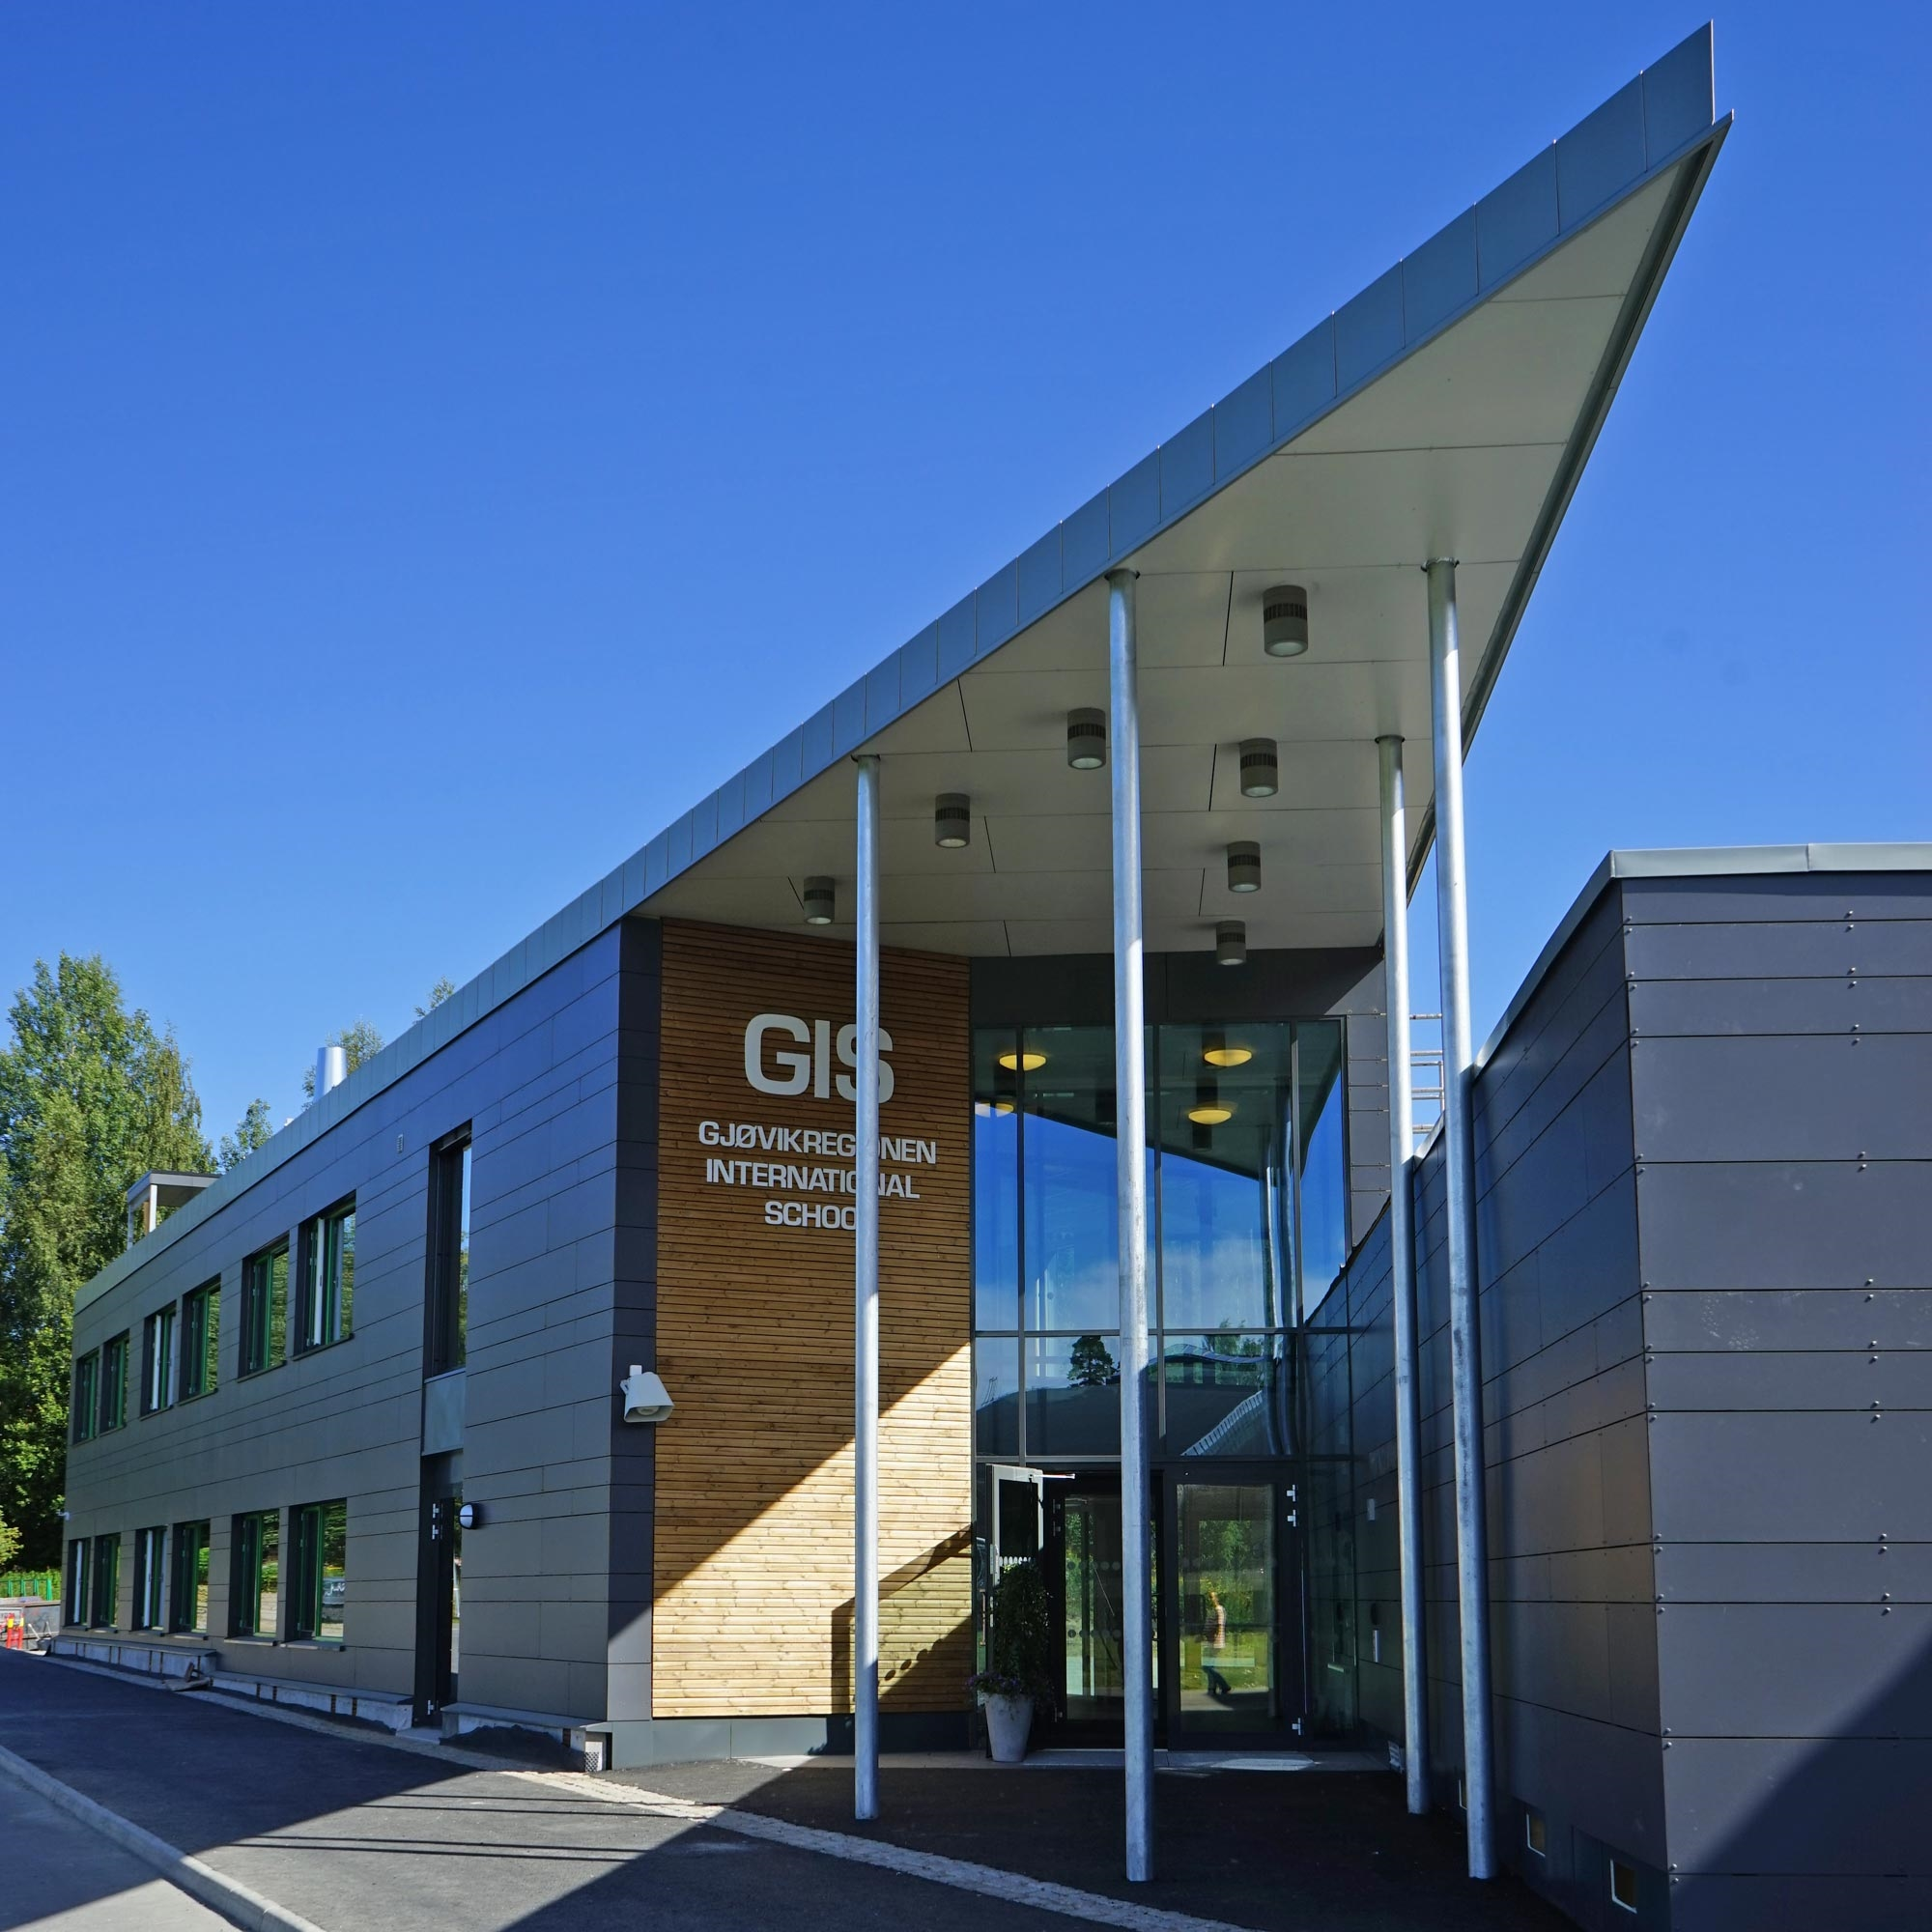 Gjøvikregionen International School - Nybygg ferdigstillt 2017